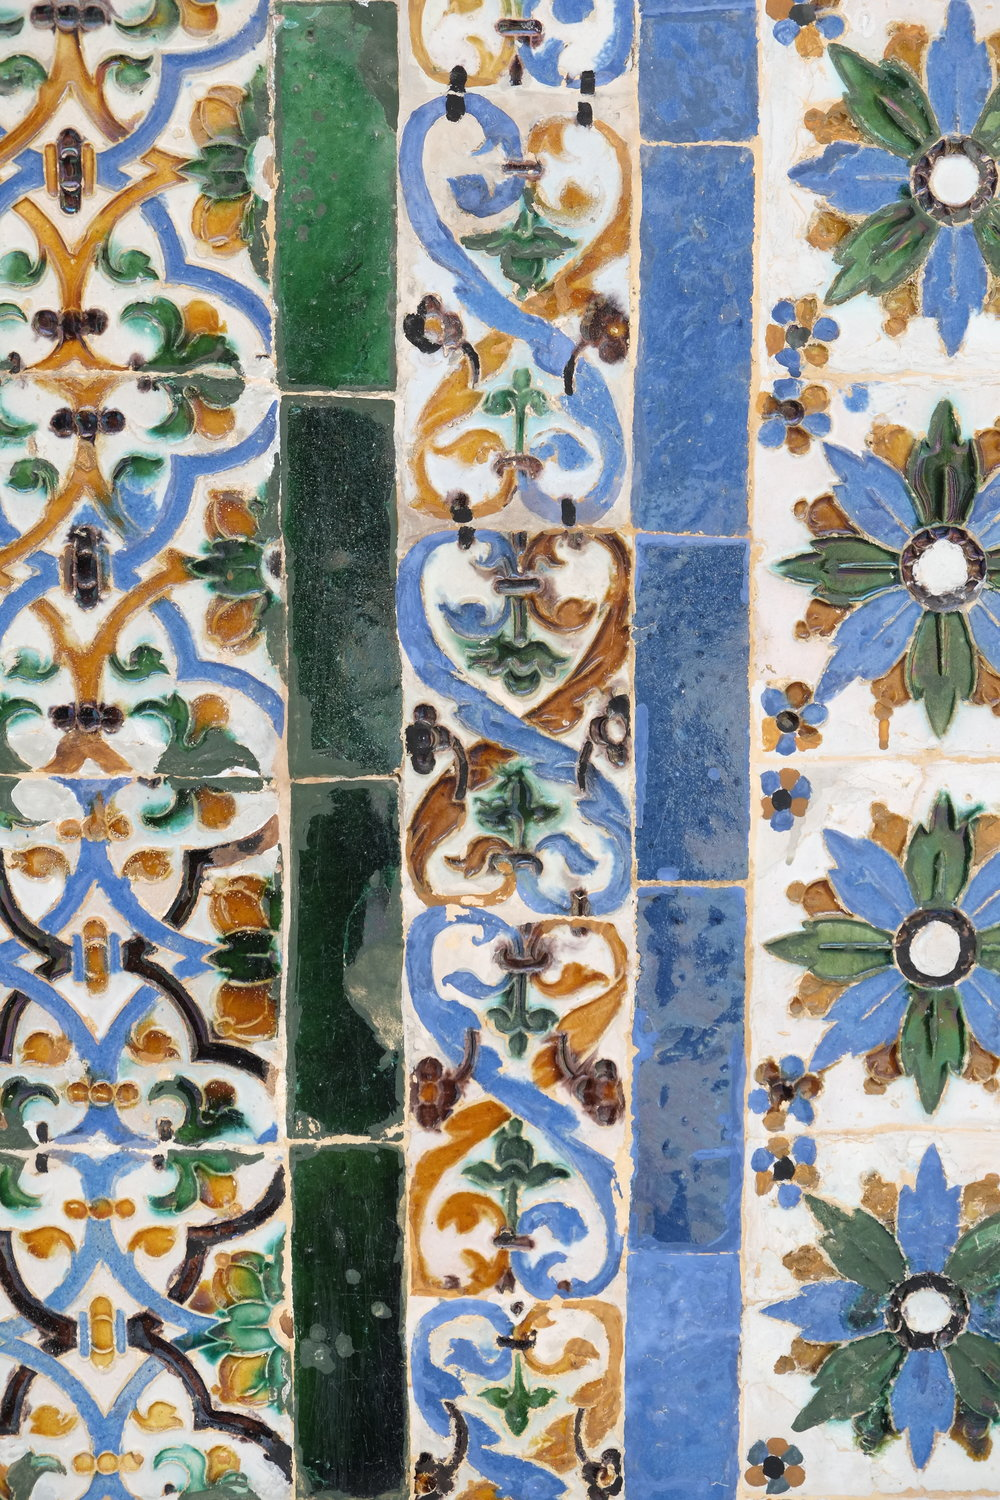 Tiles from the Casa de Pilatos